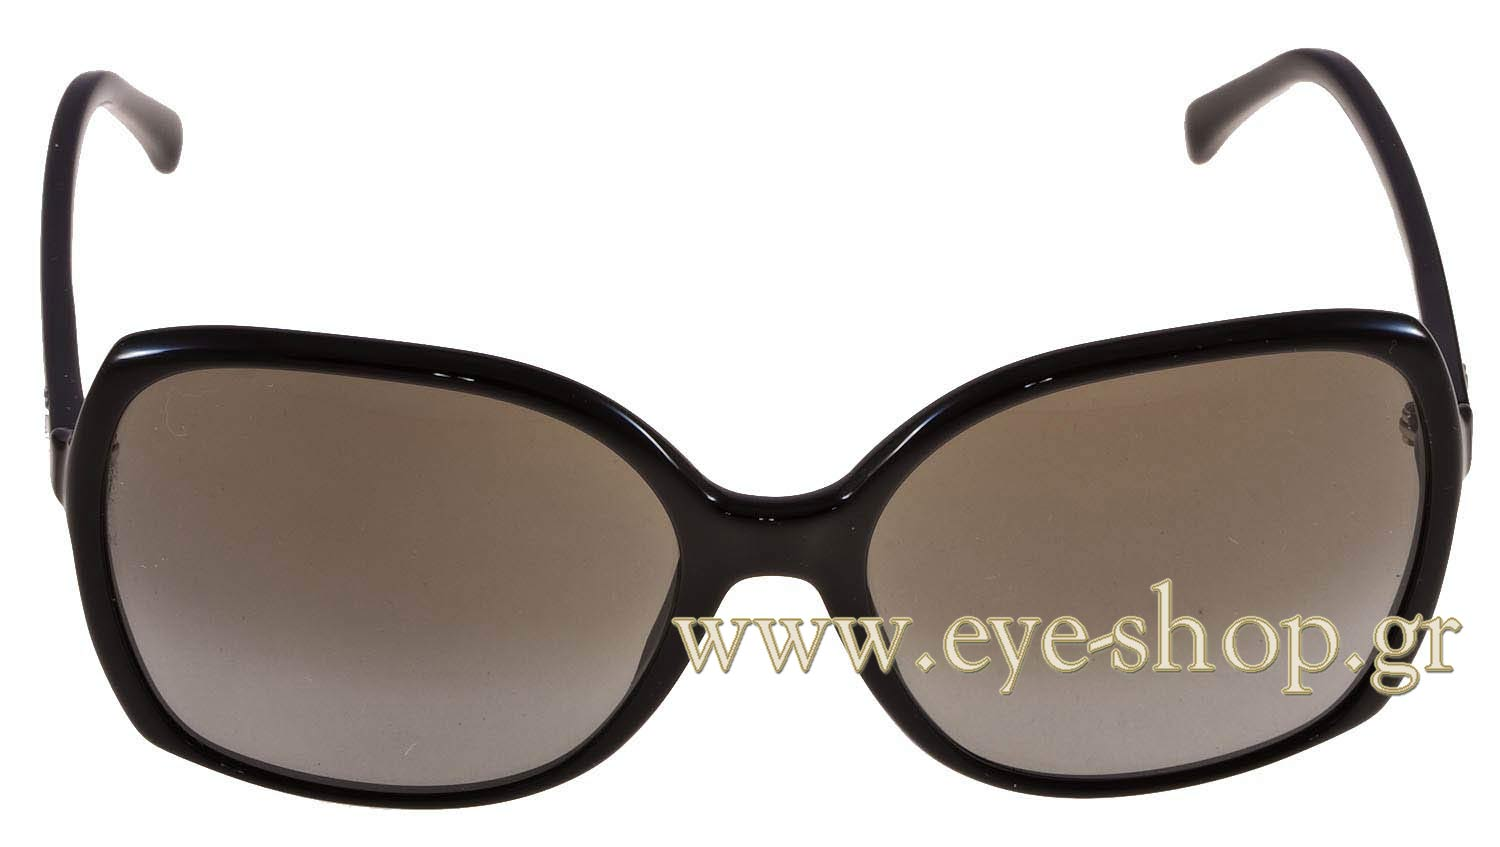 fdeb71acb1 Frame Color 0 - Lenses Color 0. Chanel model 5204 color C5014R